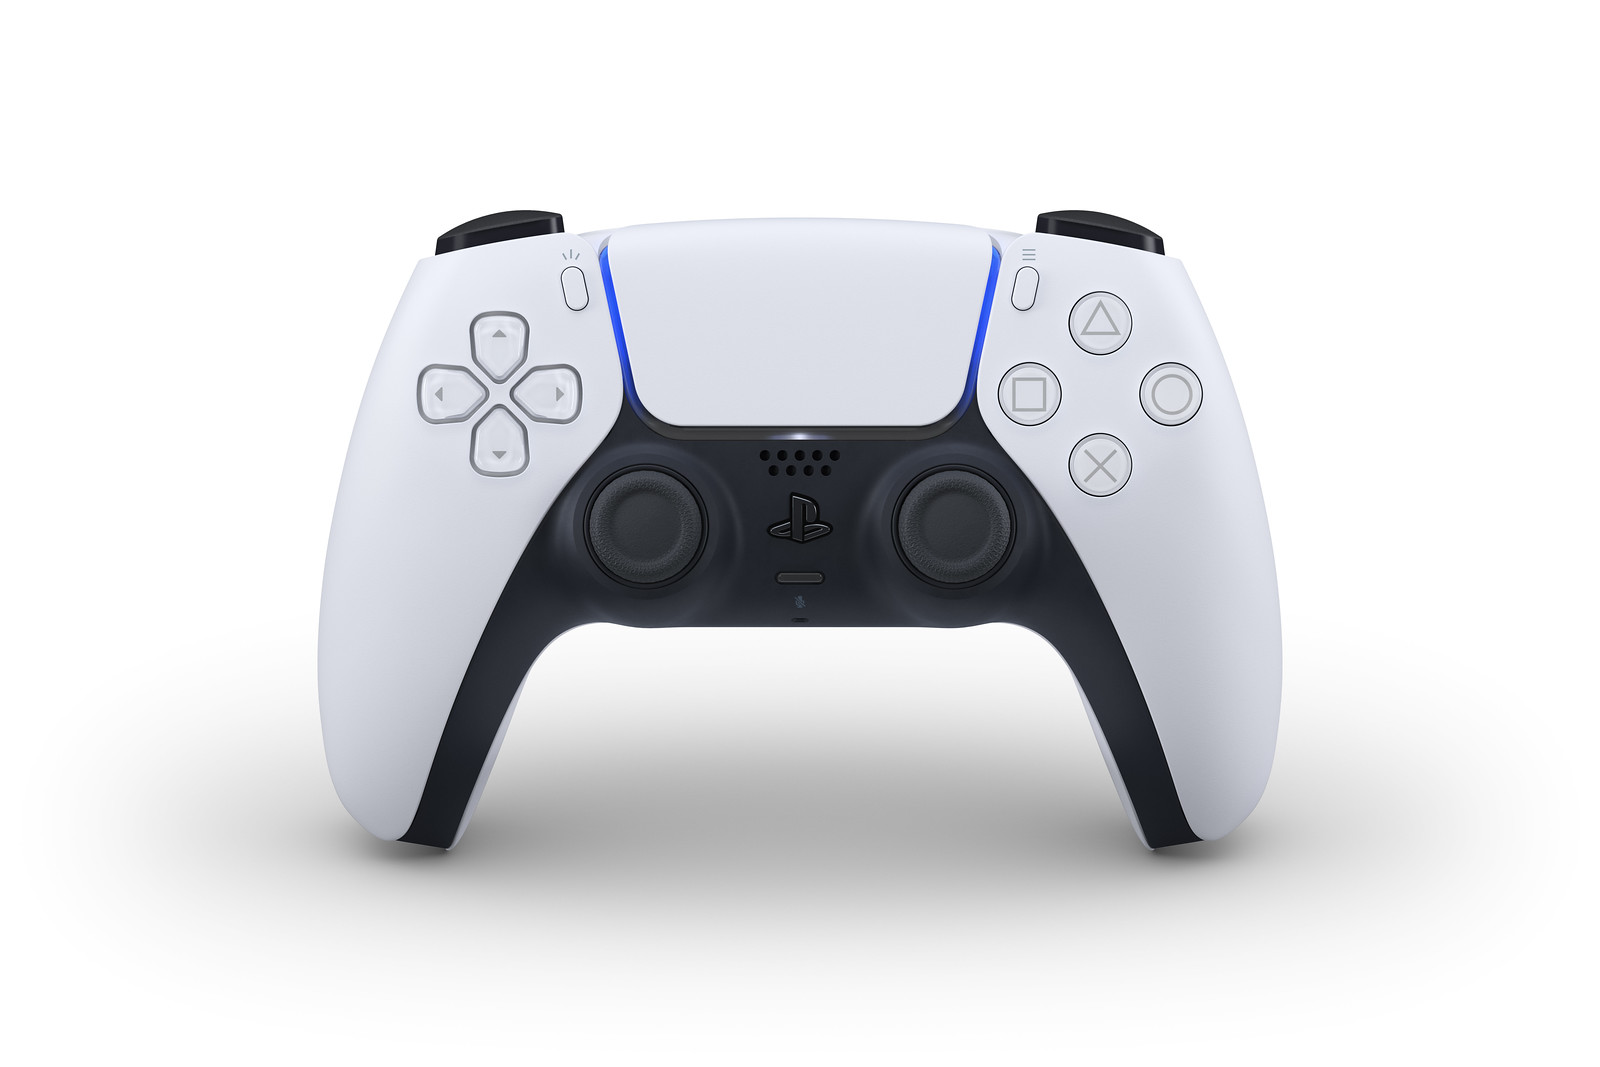 The DualSense PS5 controller